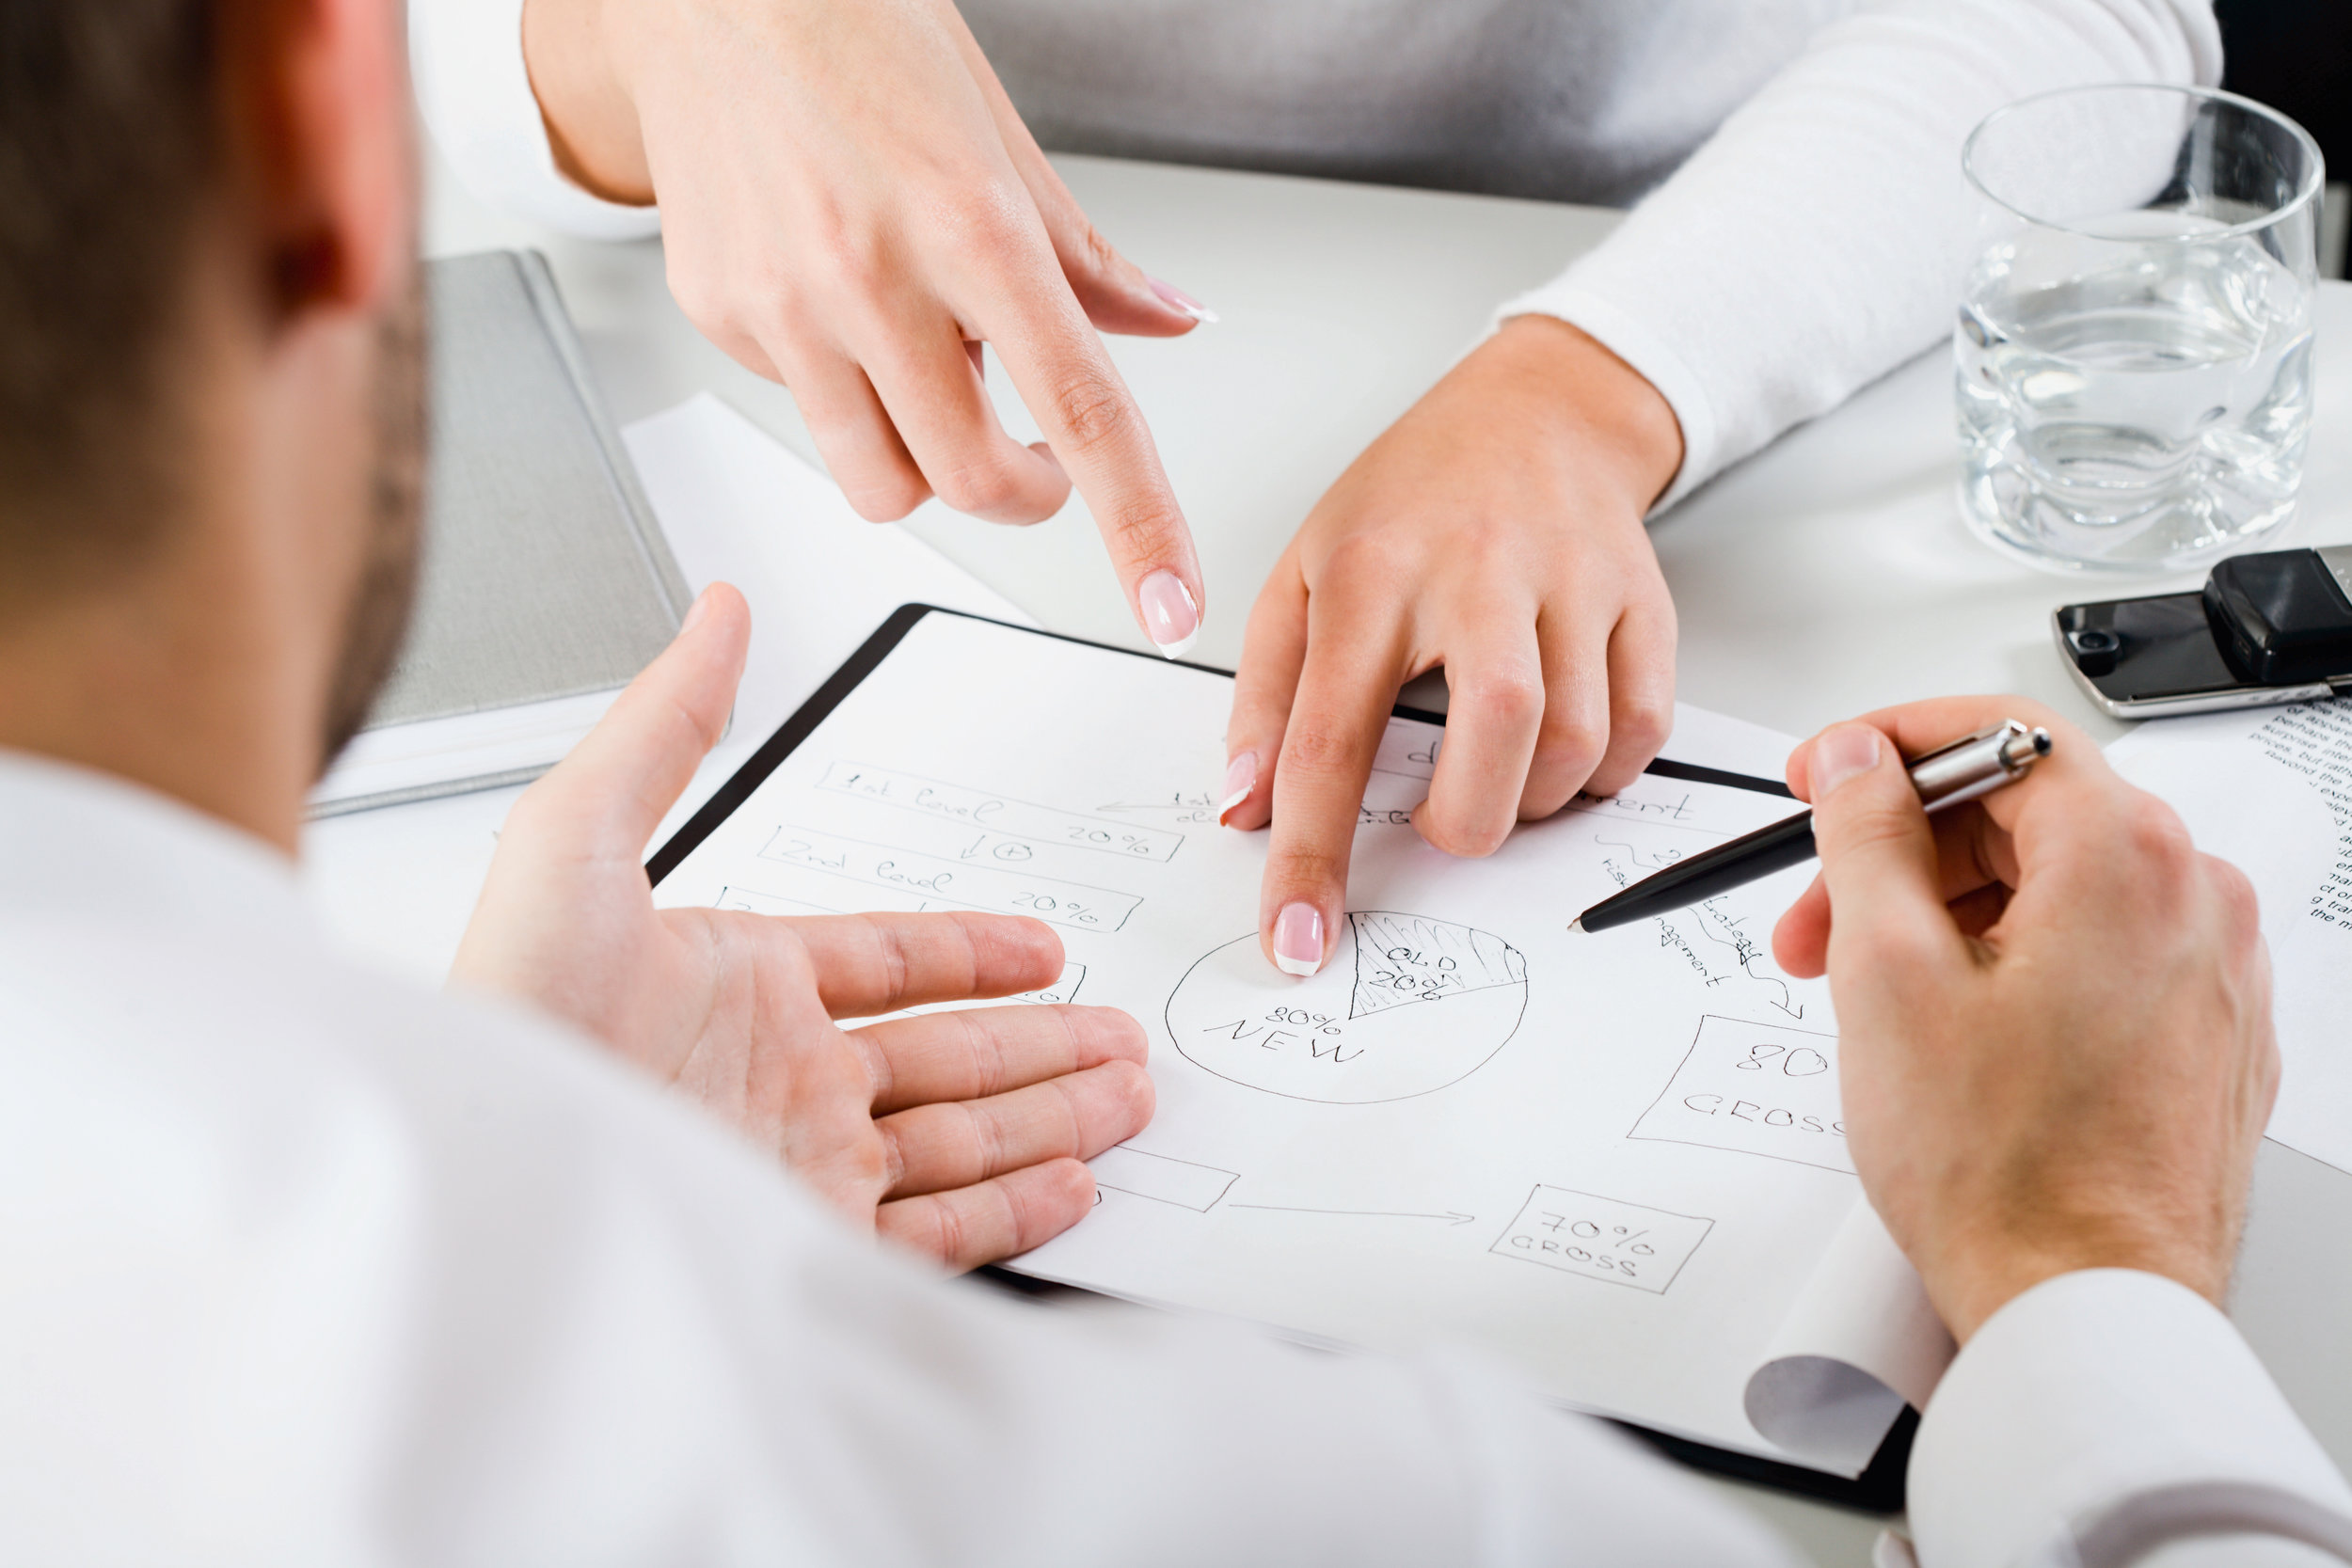 Organizational-Change Preparation - Whether you are adding an associate, retiring a doctor, or preparing to sell your practice, seasons of organizational change are an ideal time to enlist the support of a consultant. Make (and recover from) changes profitably, and with the full support of your team.